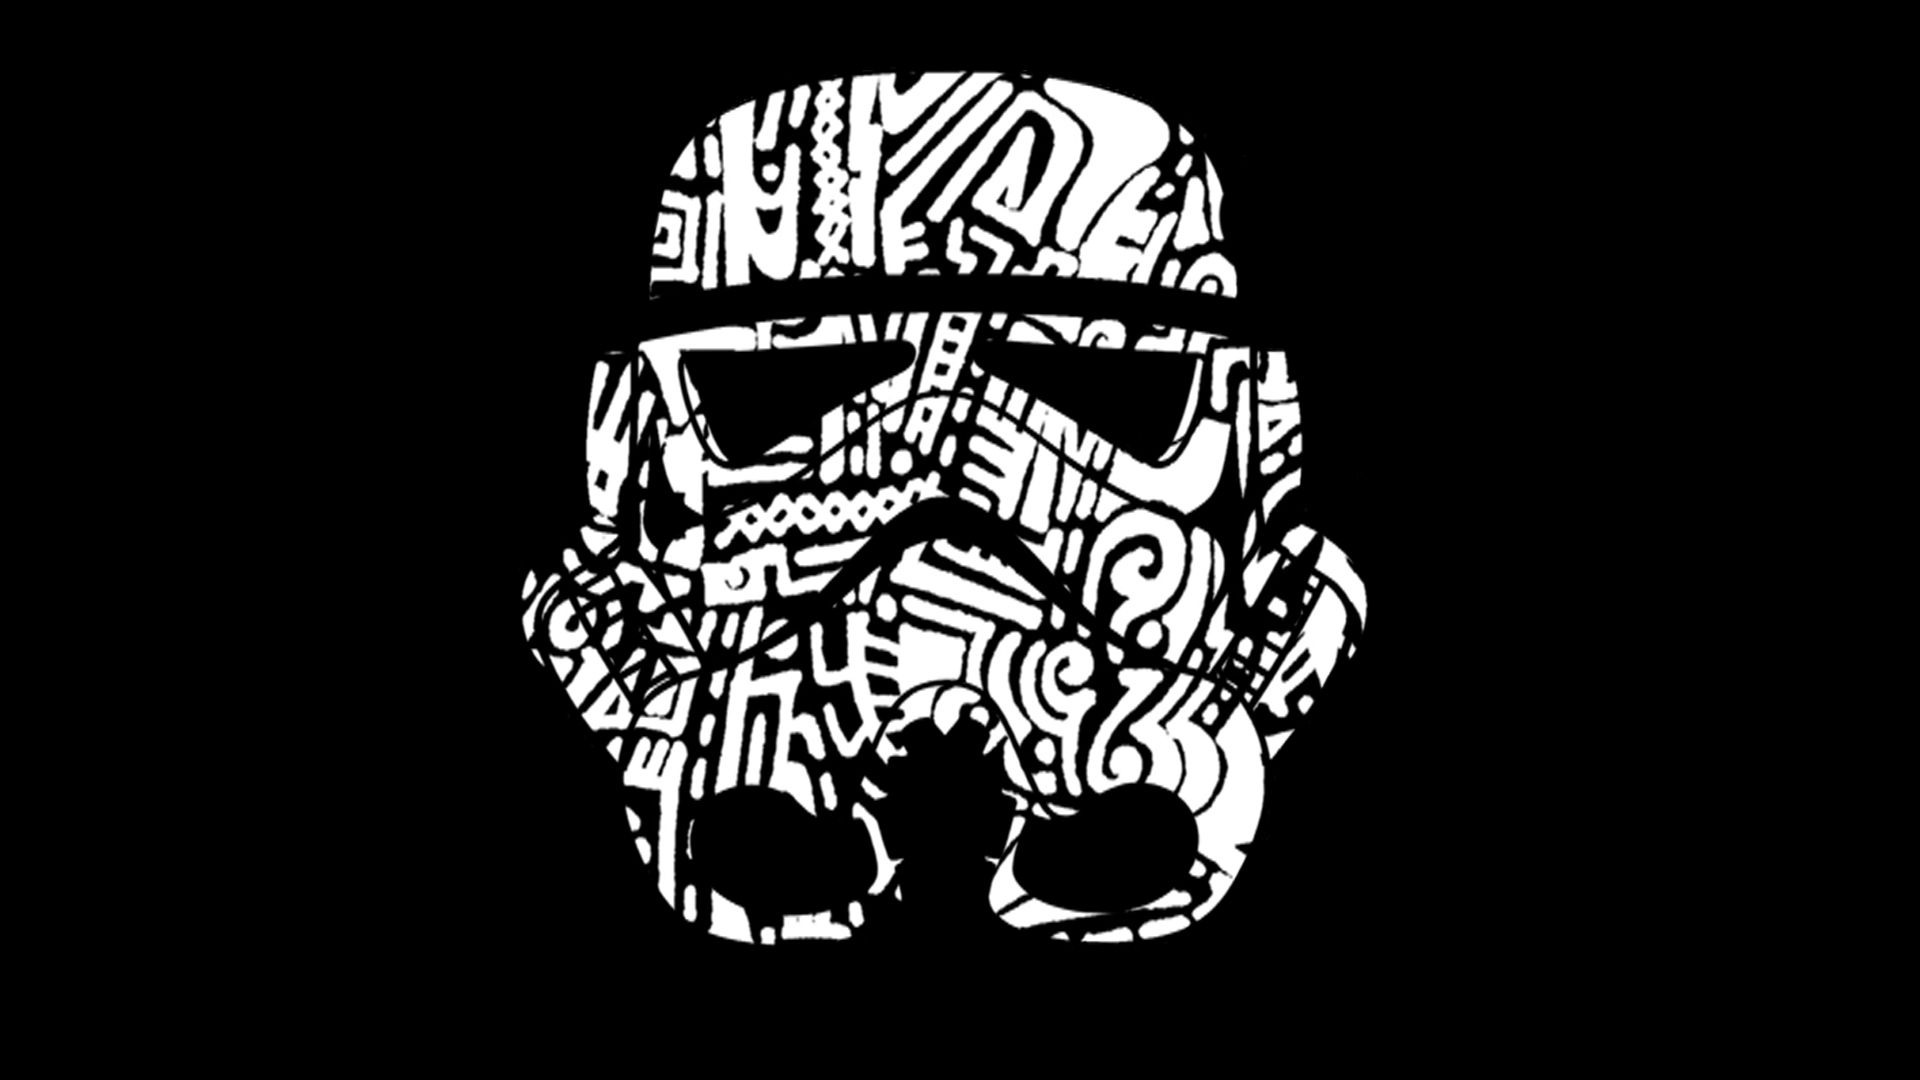 largest collection of star wars wallpapers for free download 1920